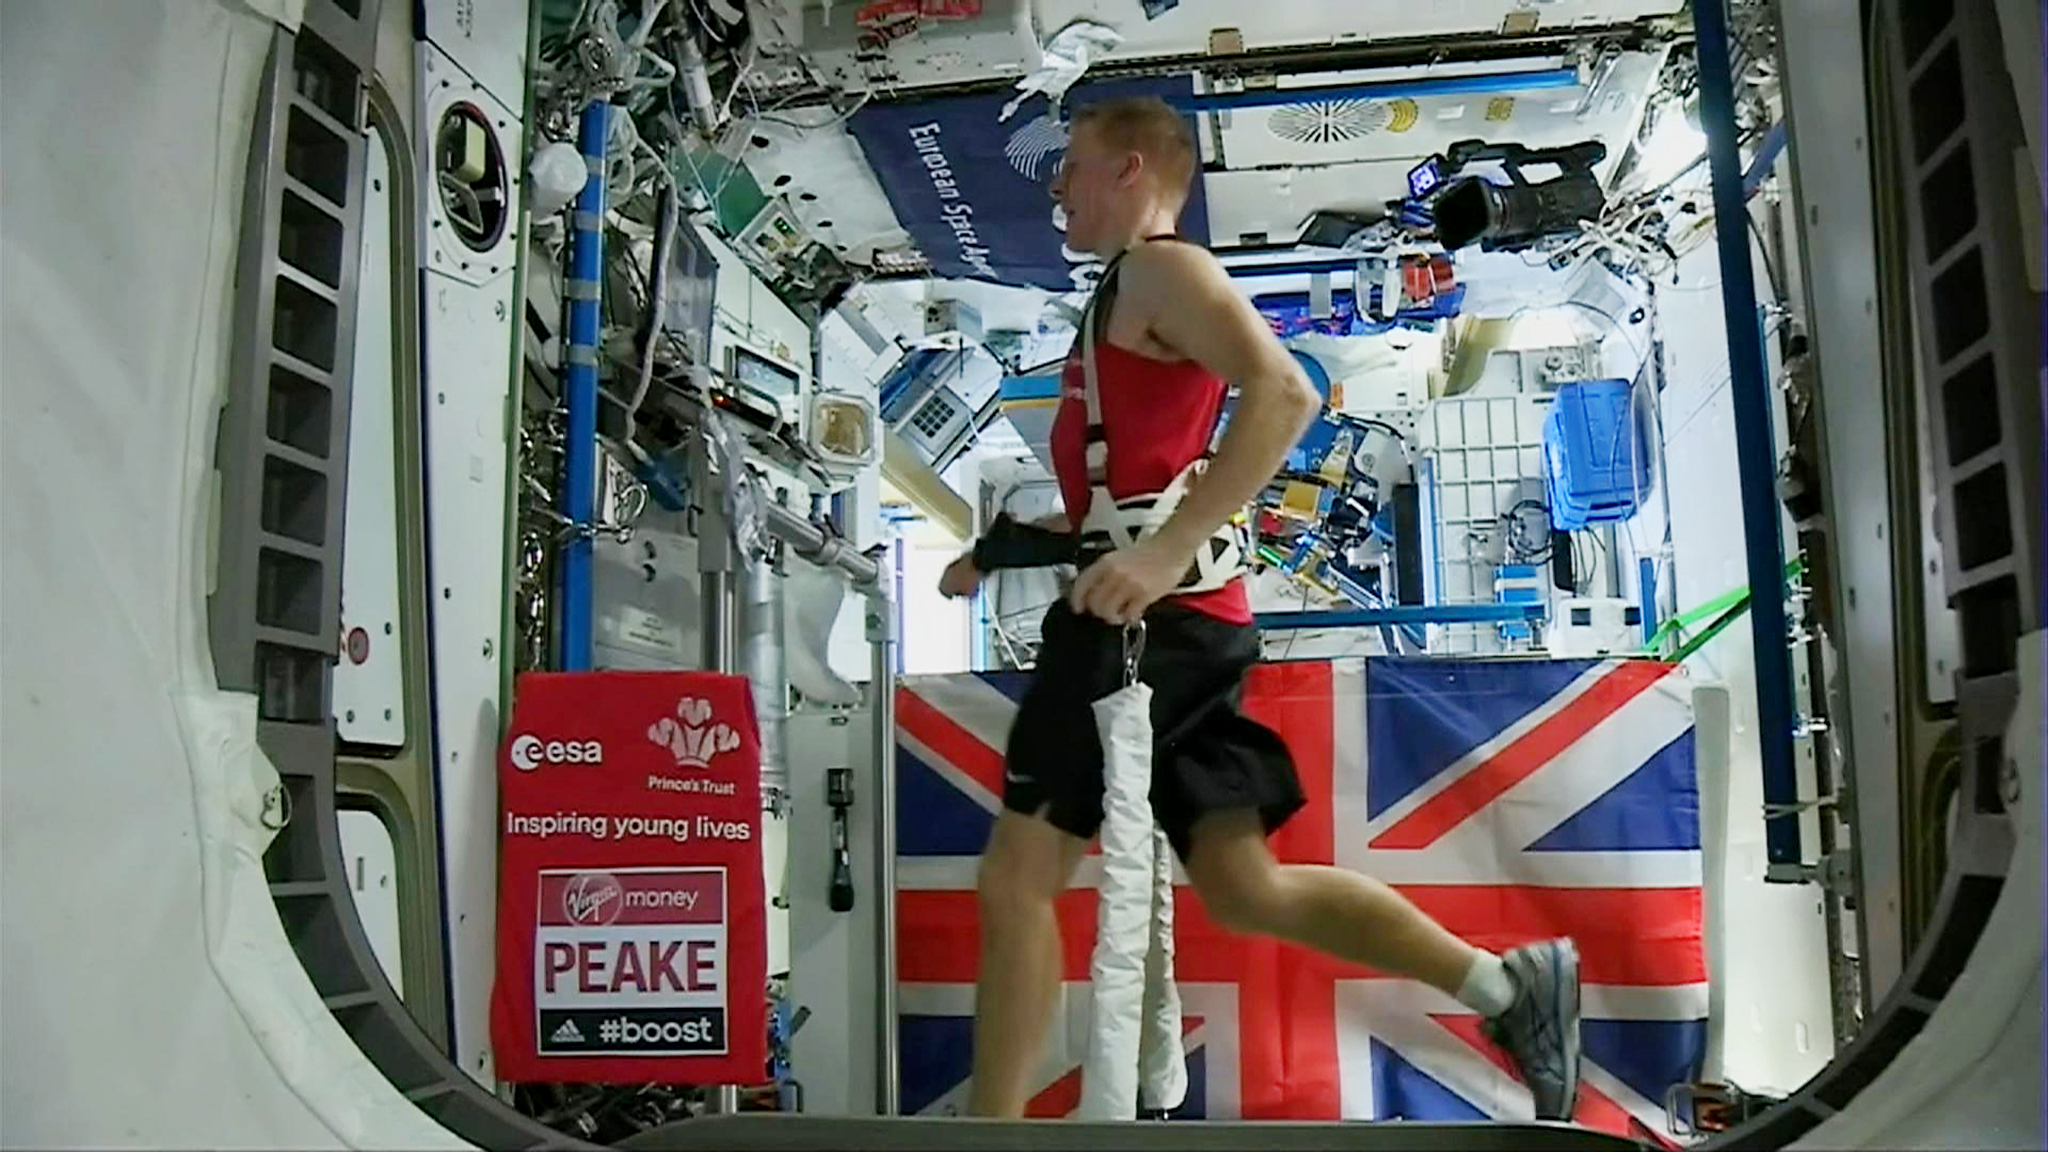 British astronaut Tim Peake in action running the London marathon while strapped to a treadmill at the International Space Station on Sunday April 24, 2016. While the official 2016 London Marathon was being run in London, Peake ran 26.2 miles on a treadmill in three hours 35 minutes 21 seconds, while aboard the apace station in orbit 250km above the Earth.(EUROPEAN SPACE AGENCY (ESA) via AP) TV OUT